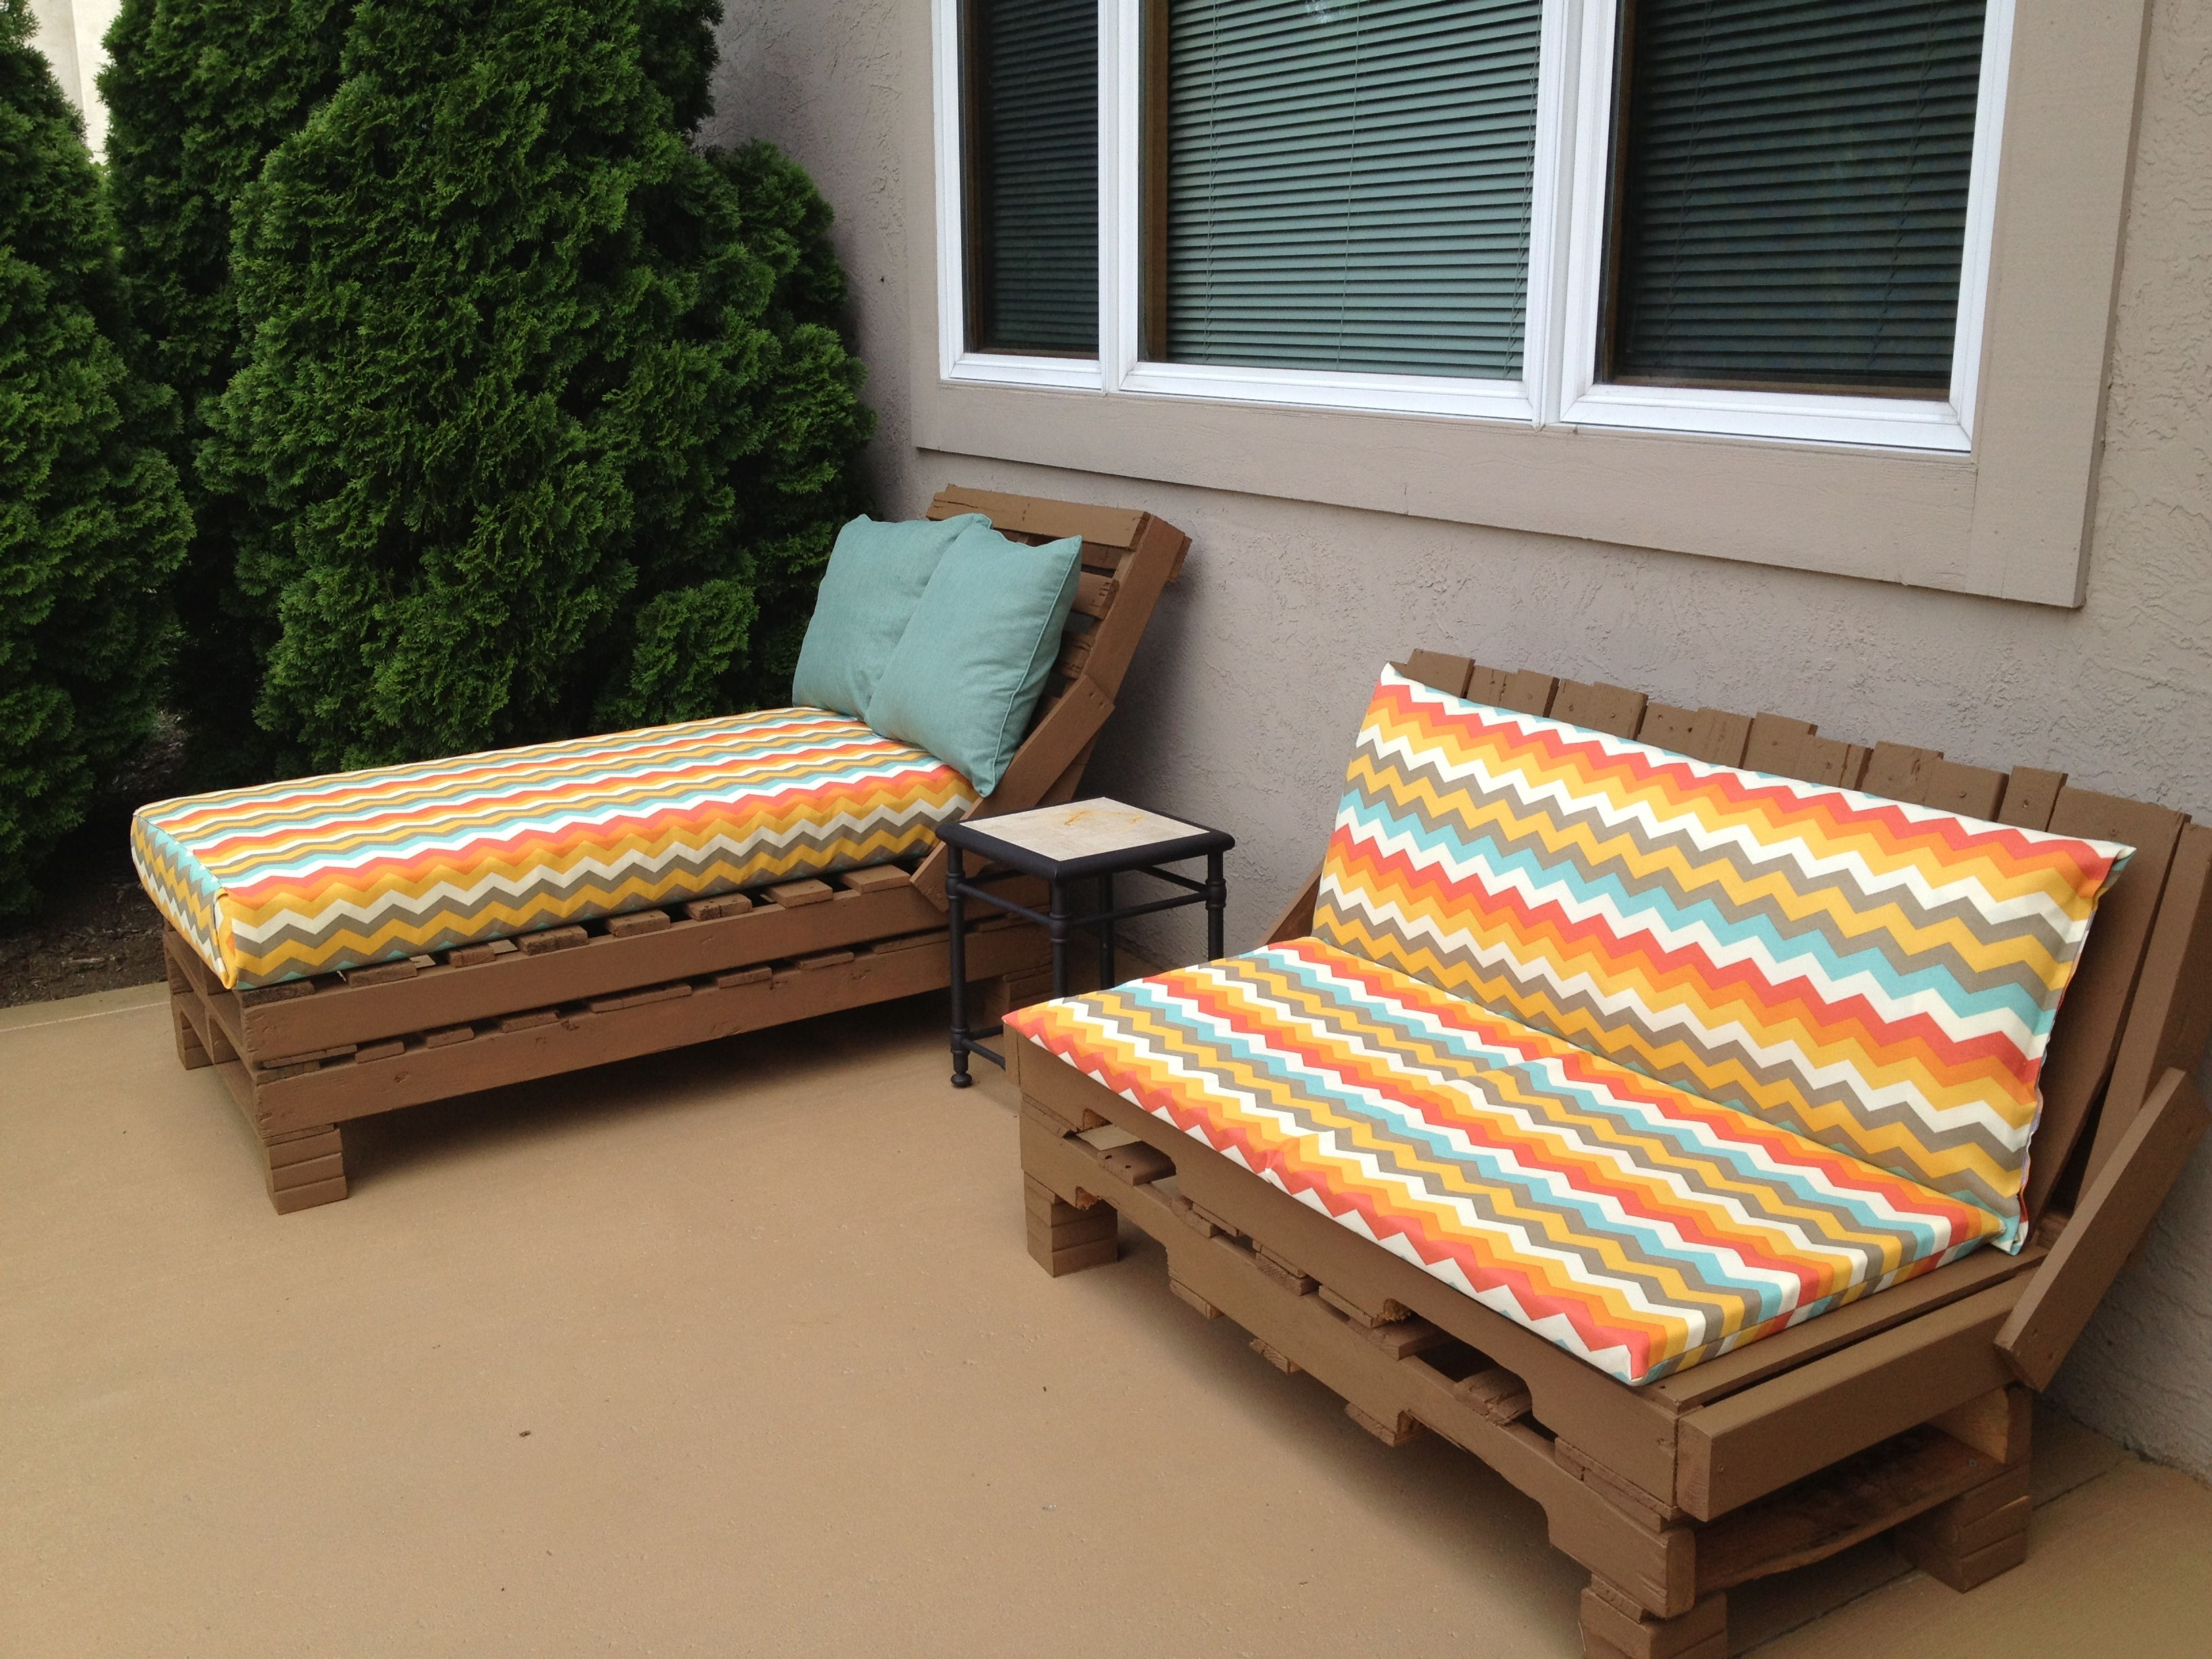 pallet patio furniture so easy stack pallets nail together paint cover